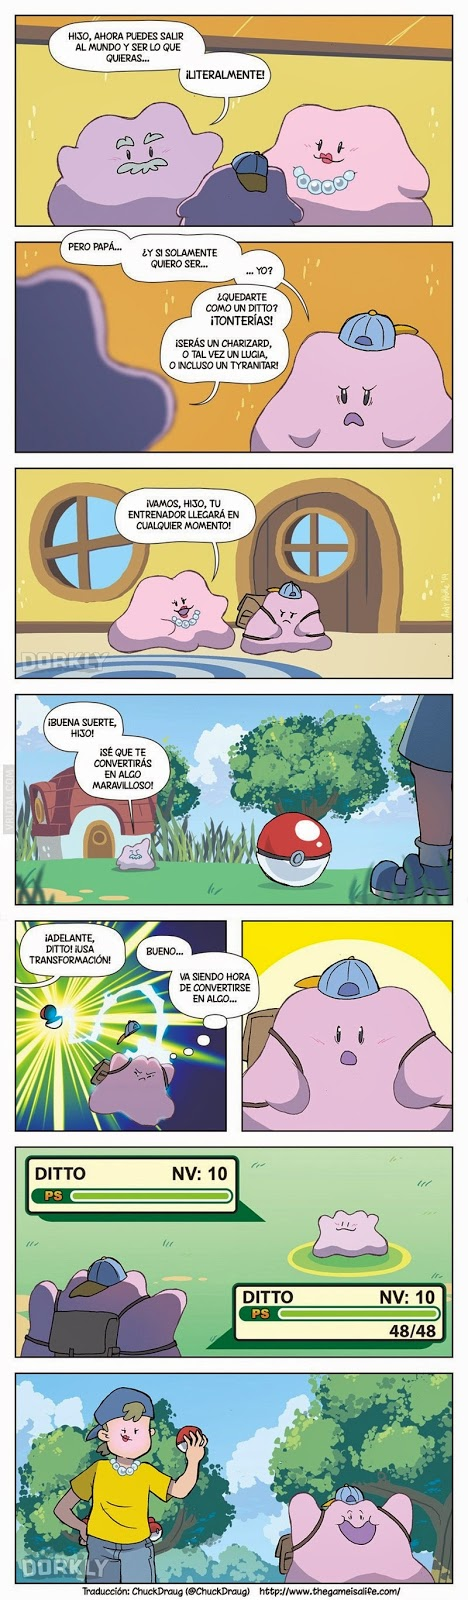 Historias Pokemon: Ditto